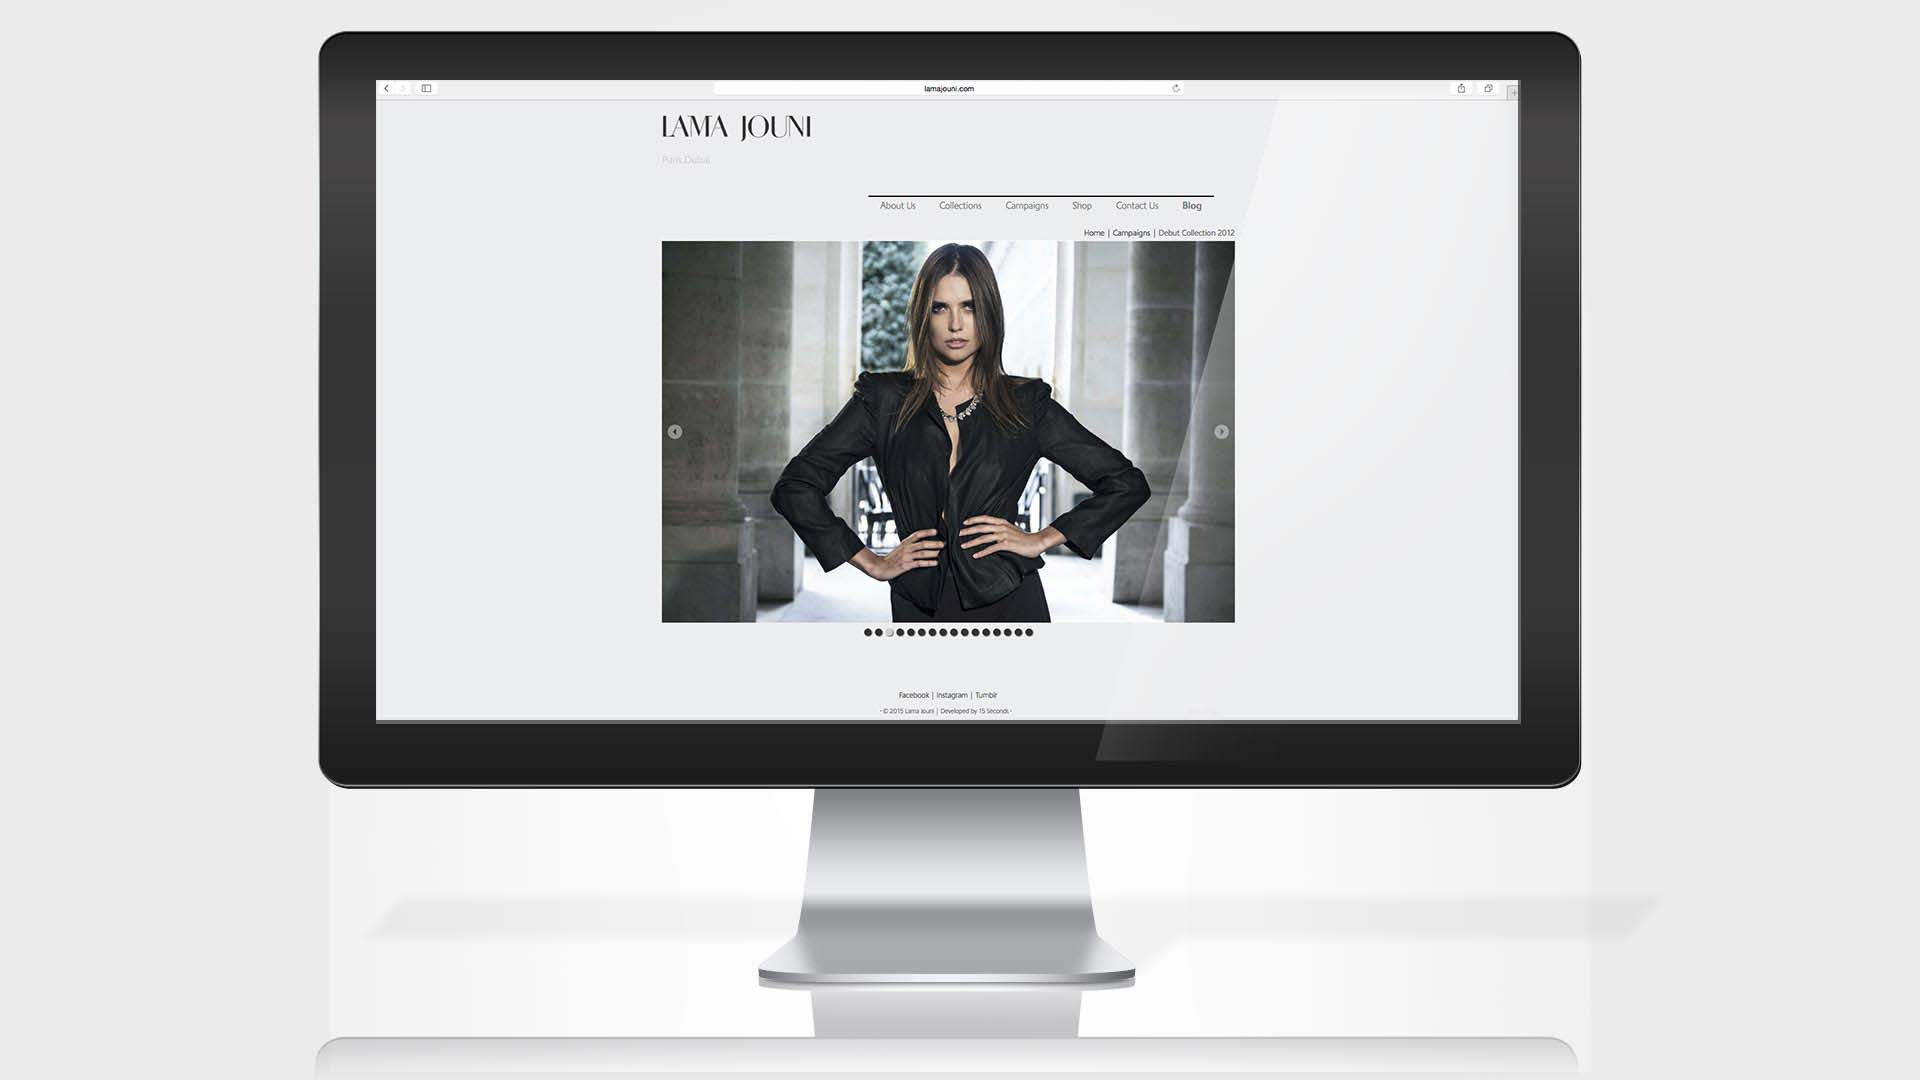 lama-jouni-website-single-campaign-page